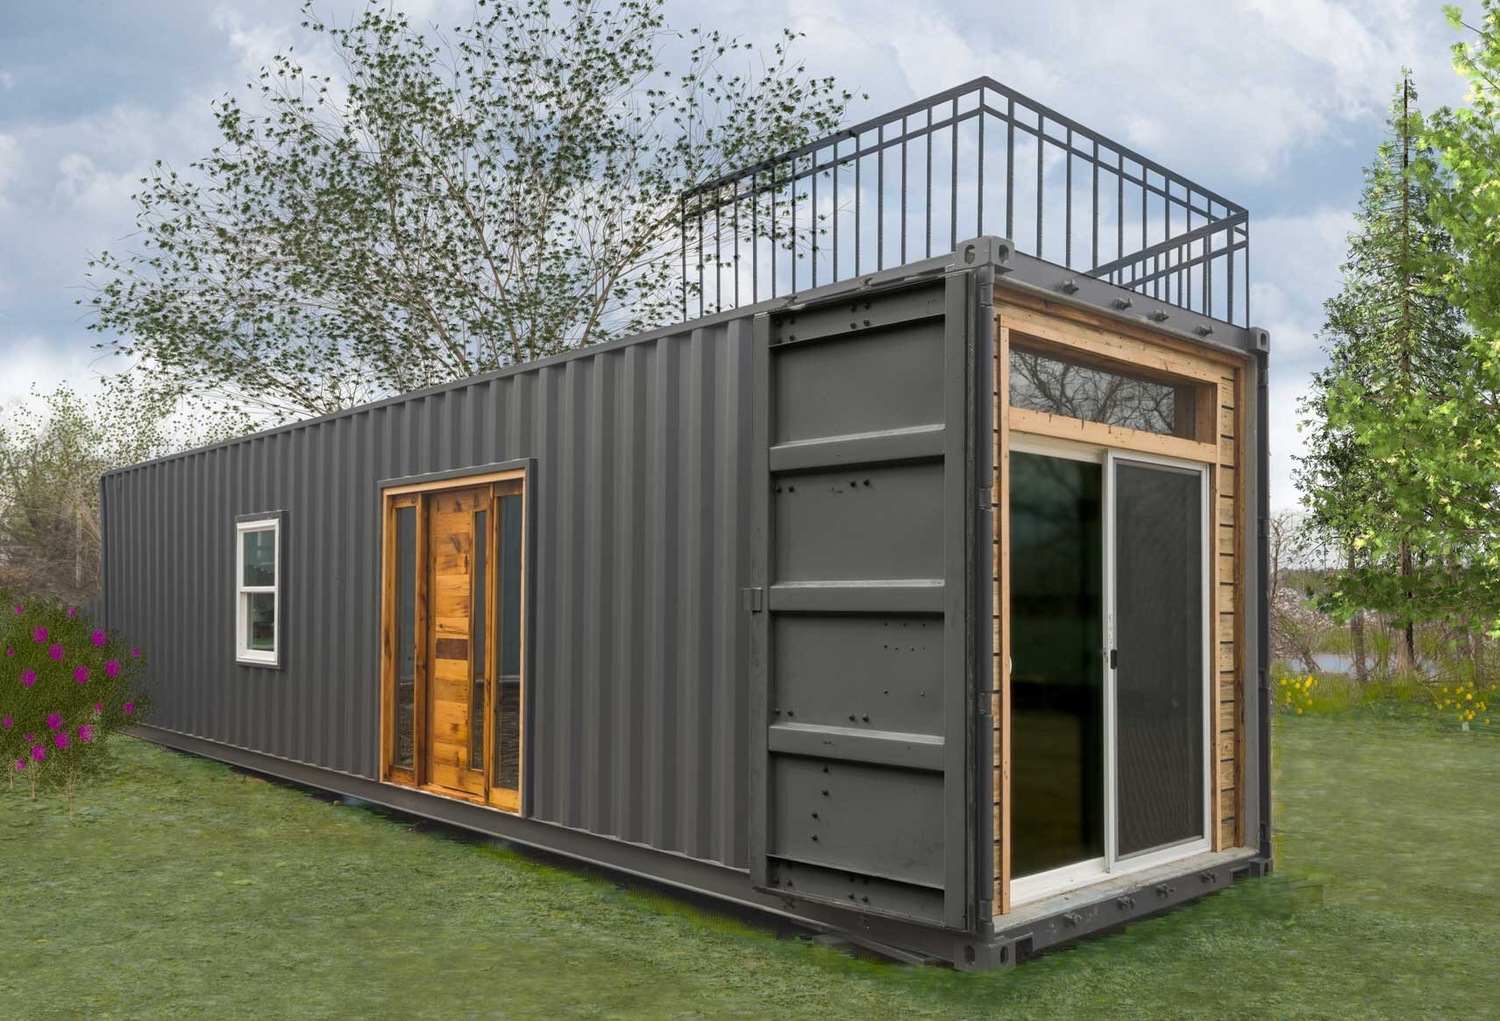 Tiny house town freedom from minimalist homes 300 sq ft for Tiny house minimalist